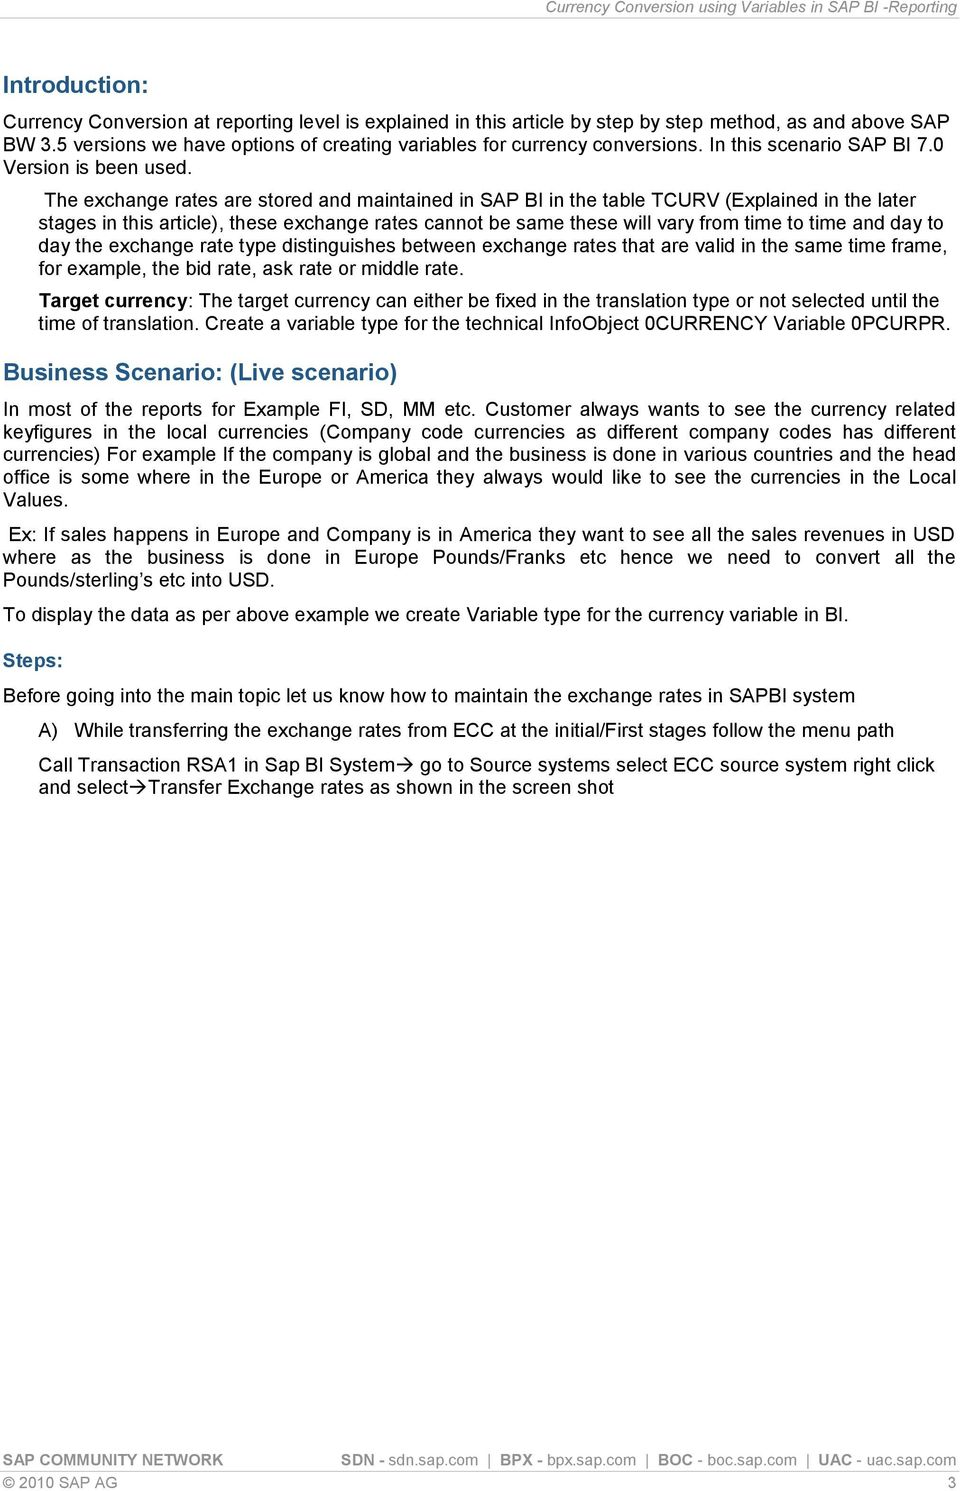 Currency Conversion using Variables in SAP BI -Reporting - PDF